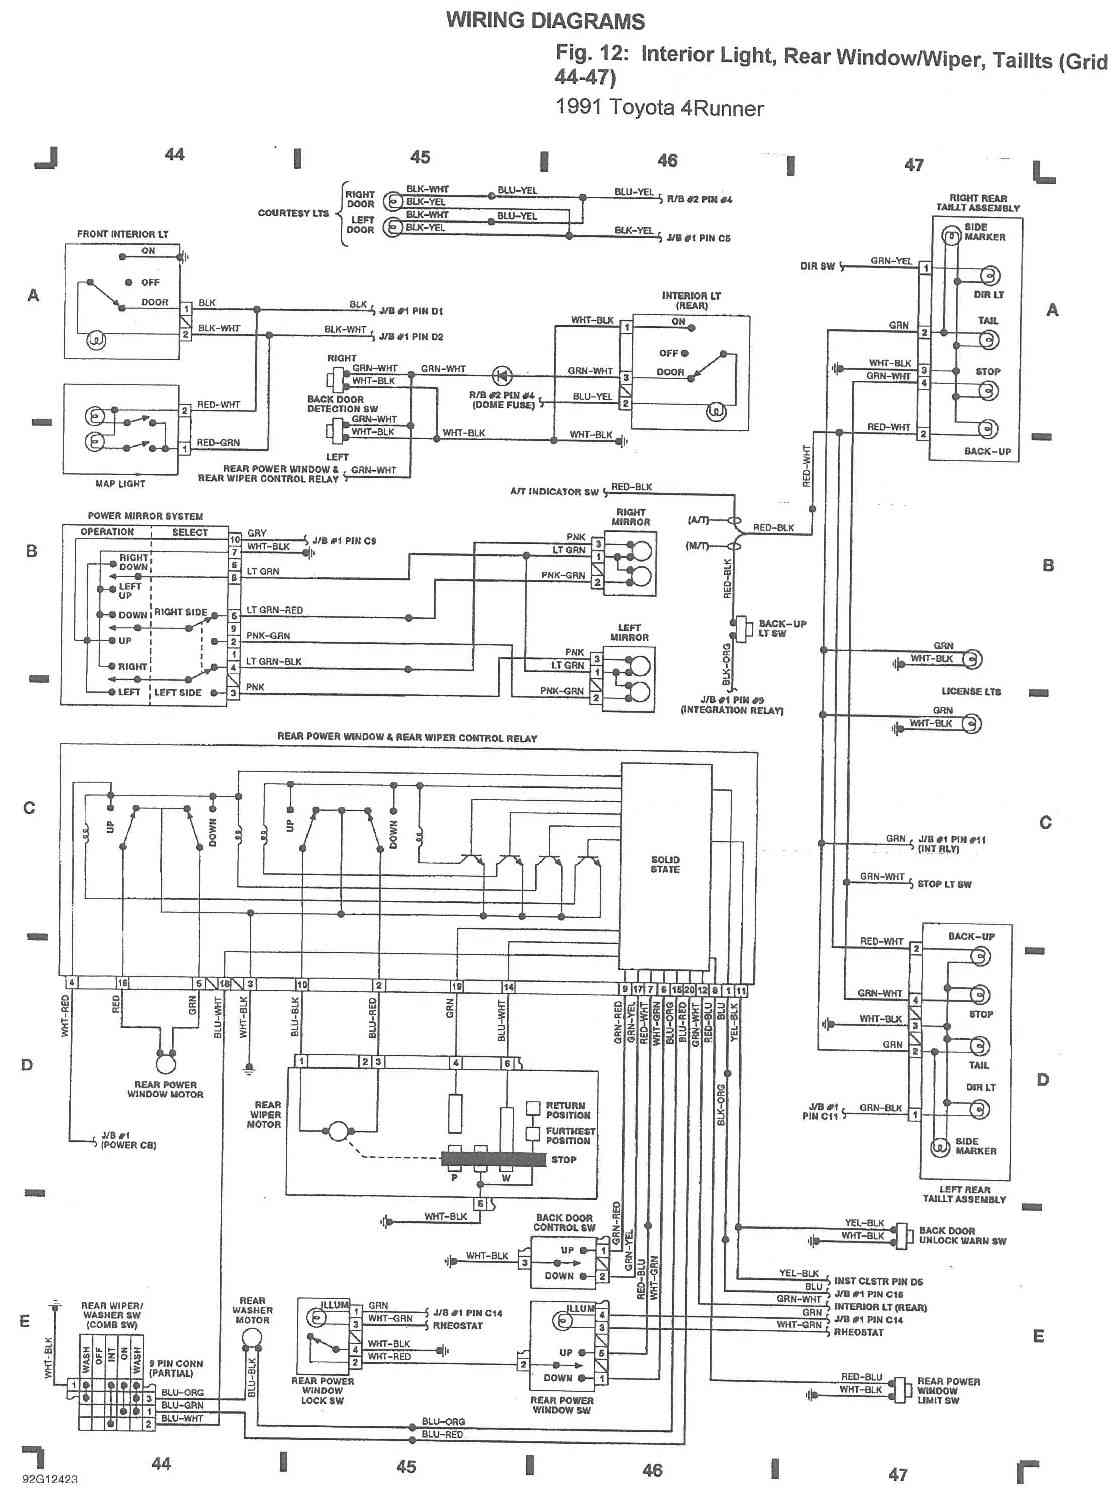 B F A moreover D Fuel Pump Relay Fuse Box Open in addition Toyotatruckwd further D Location Circuit Opening Relay Runner Hpim in addition Hei System. on 94 toyota pickup wiring diagram